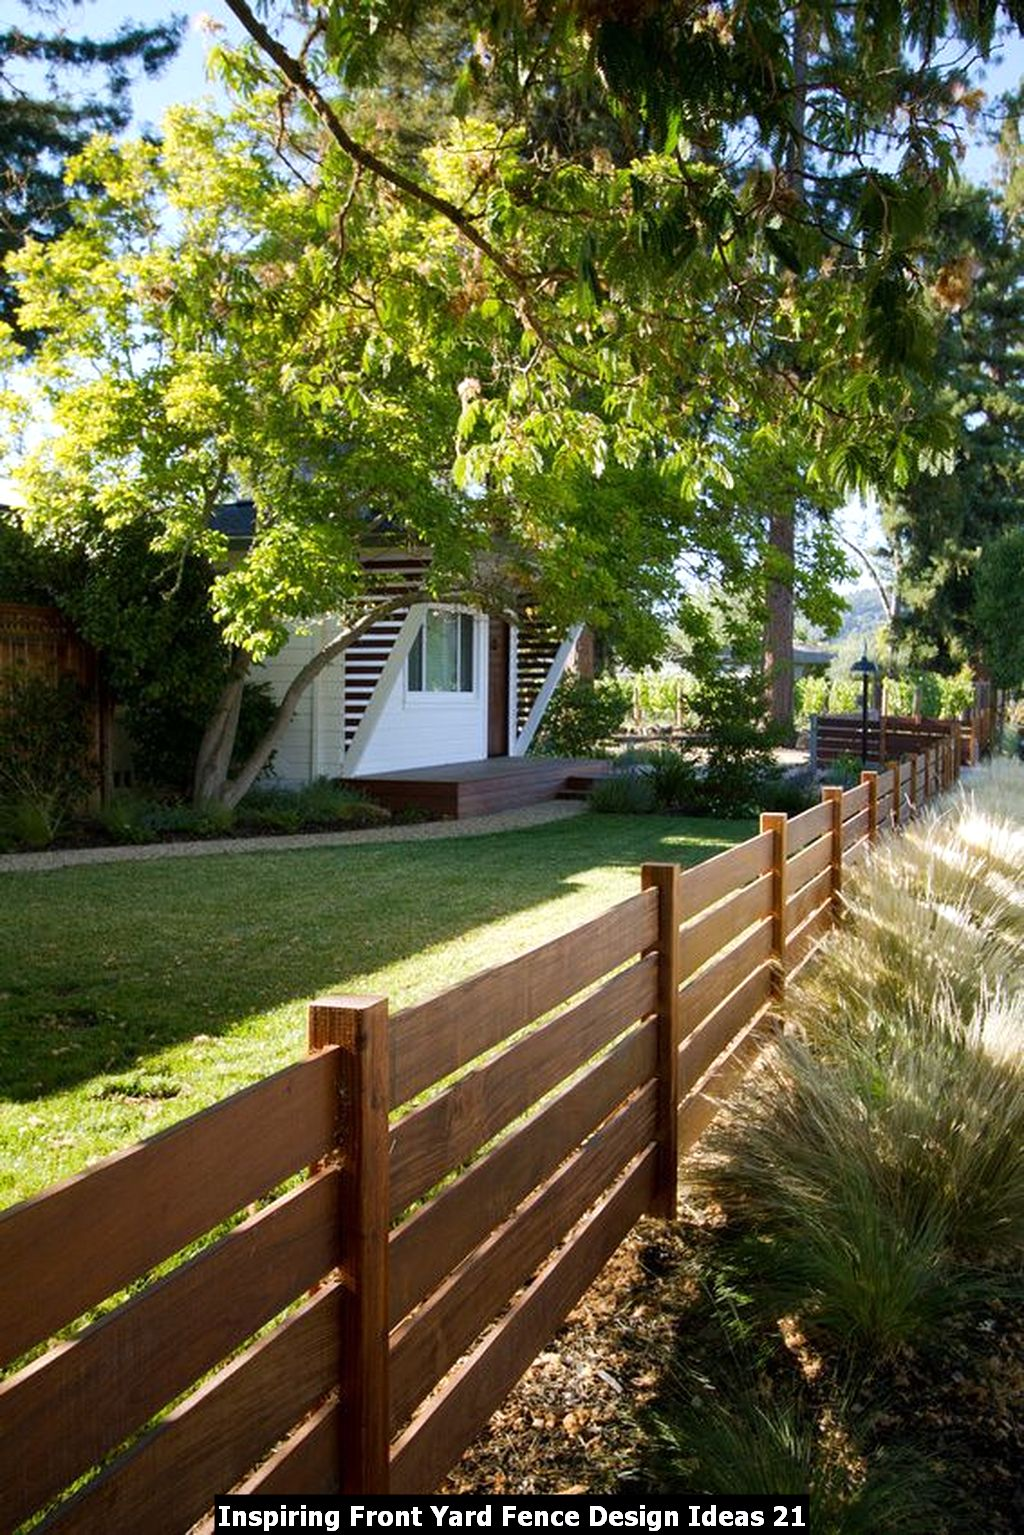 Inspiring Front Yard Fence Design Ideas 21